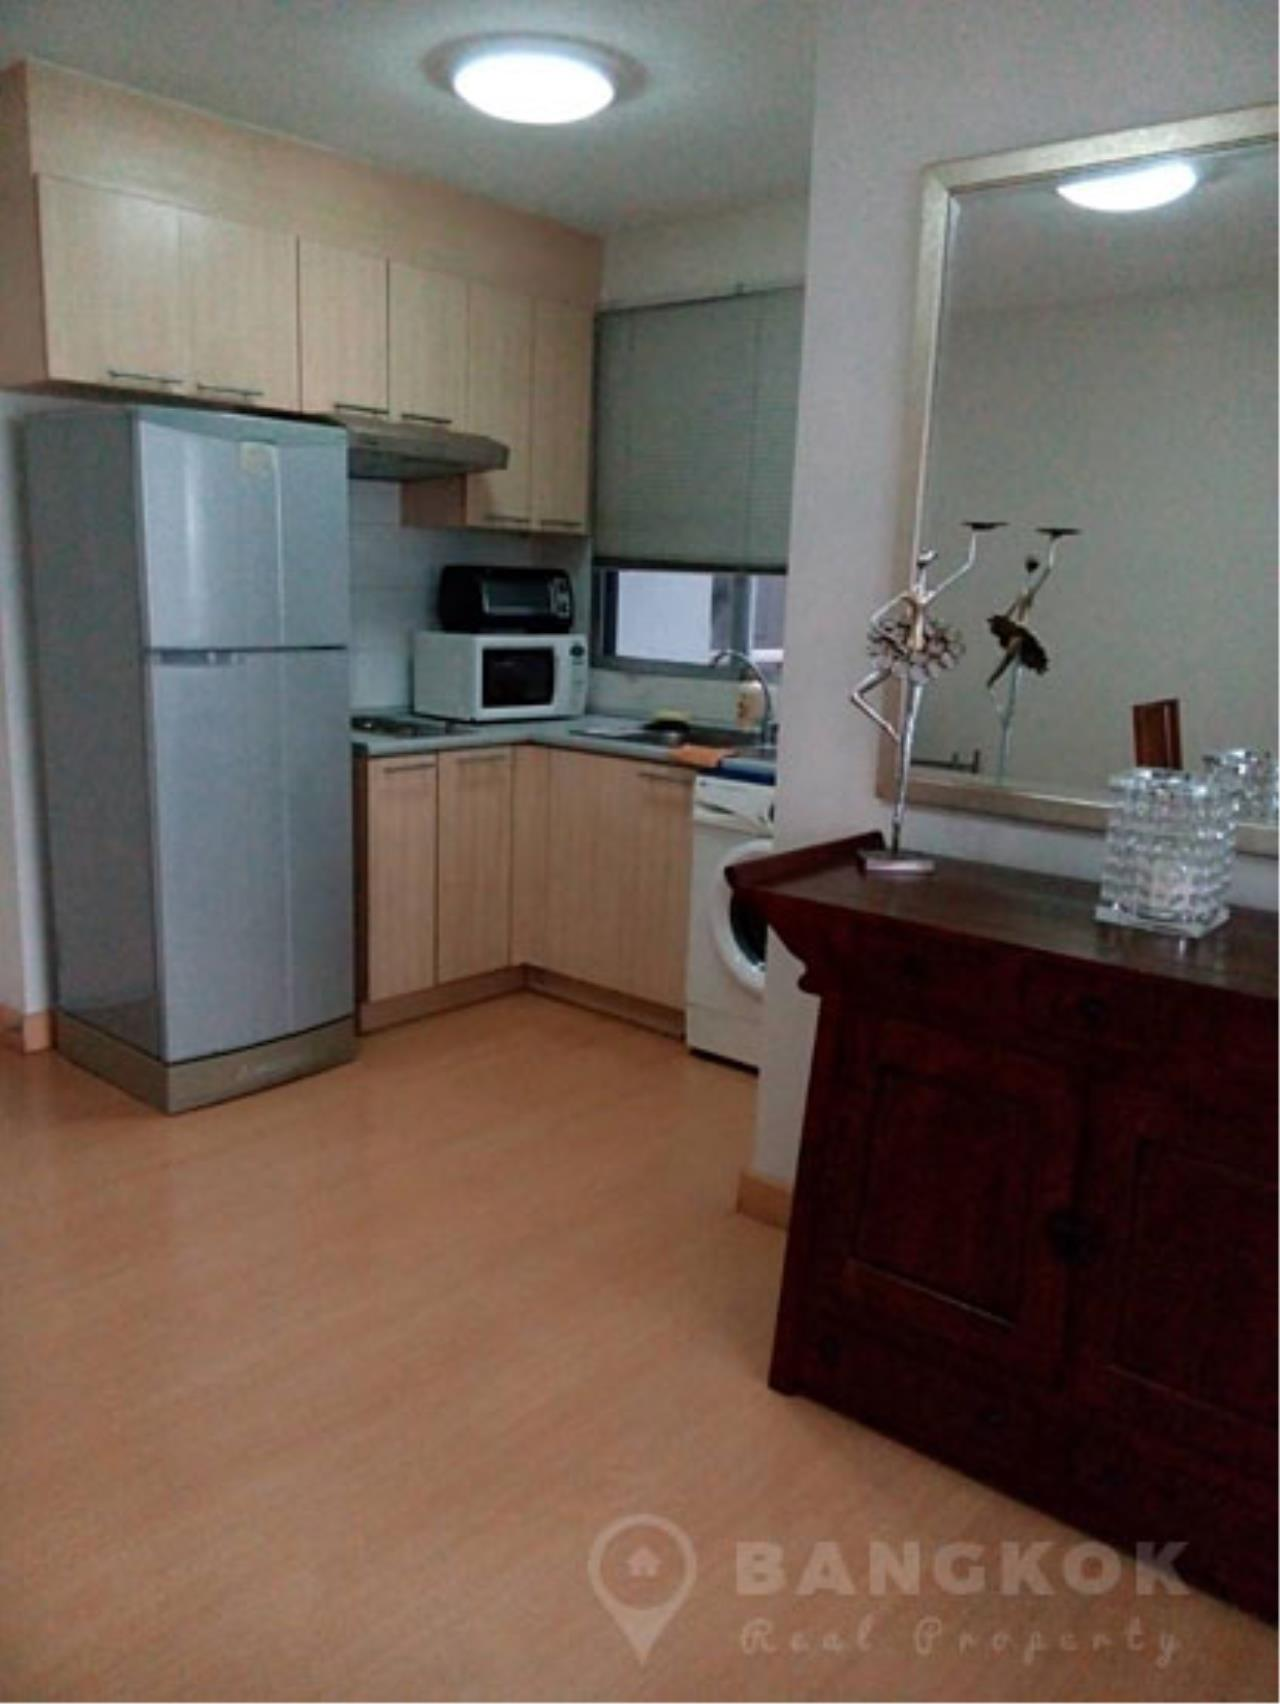 Bangkok Real Property Agency's Plus 38 Condo | Modern Spacious 1 Bed near Thonglor BTS 13